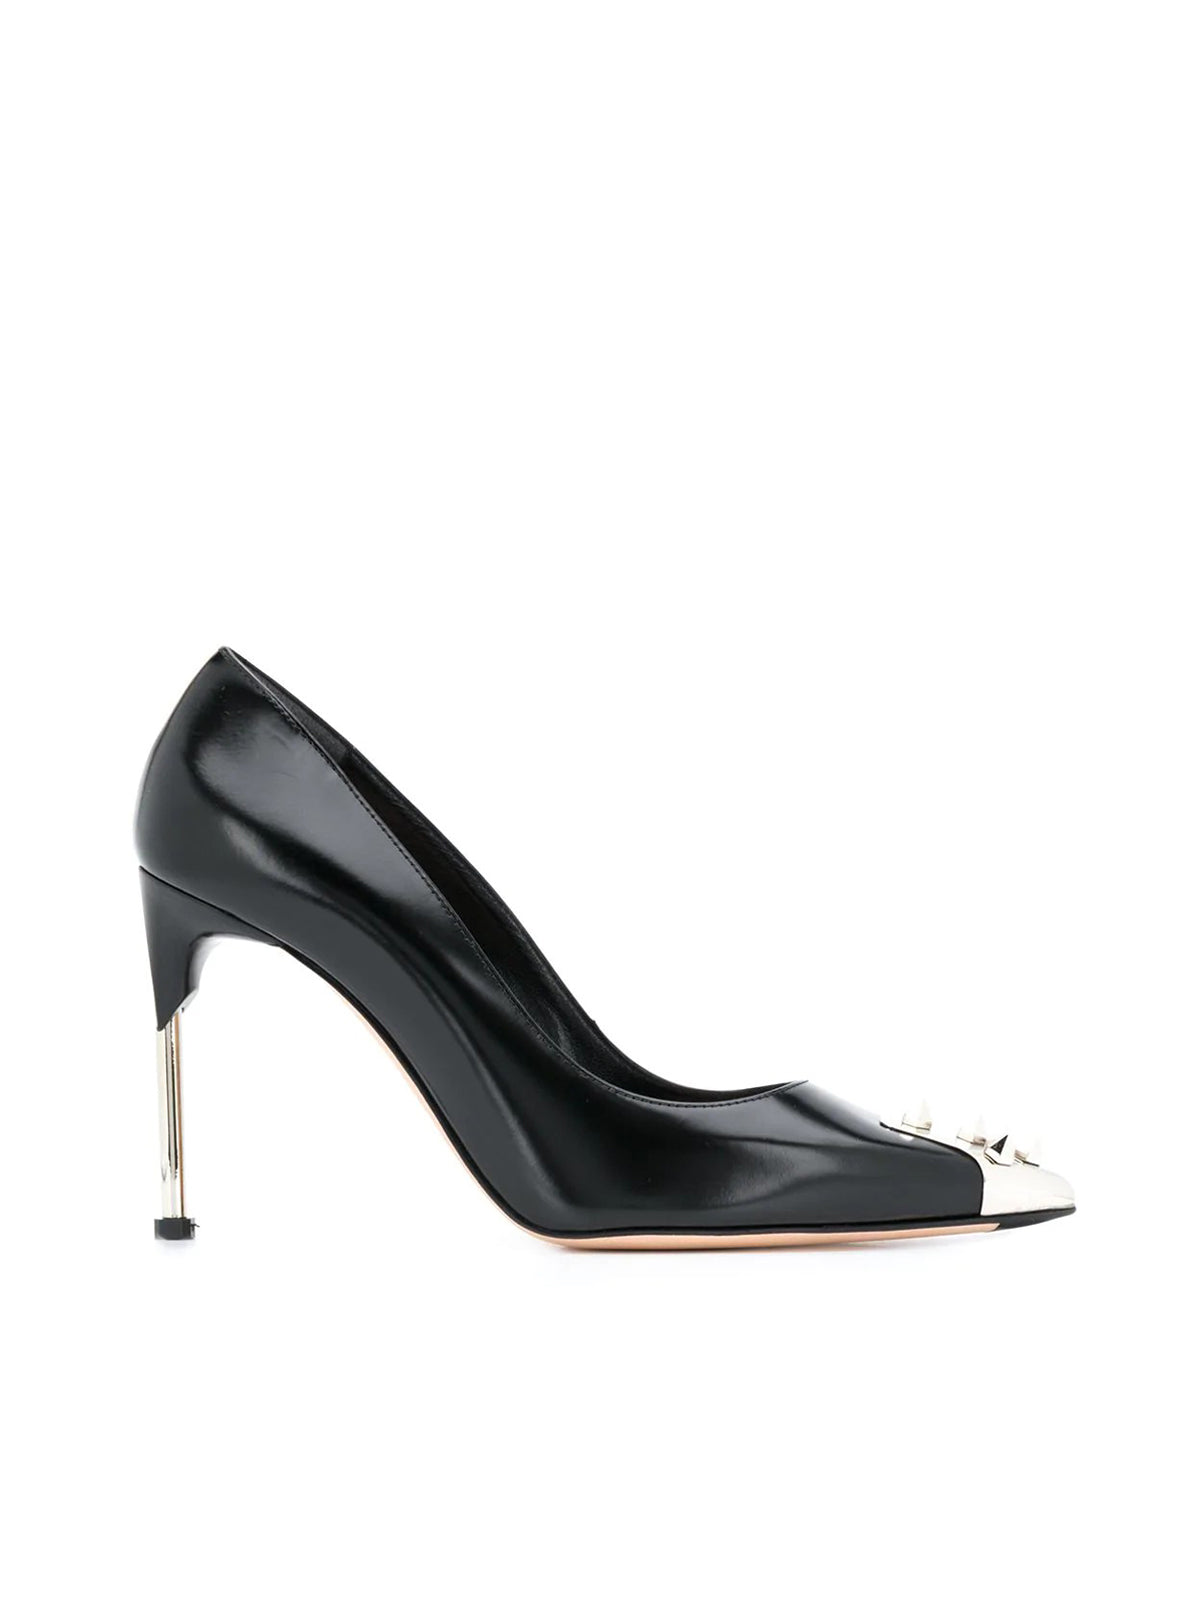 Punk Stud stiletto pumps